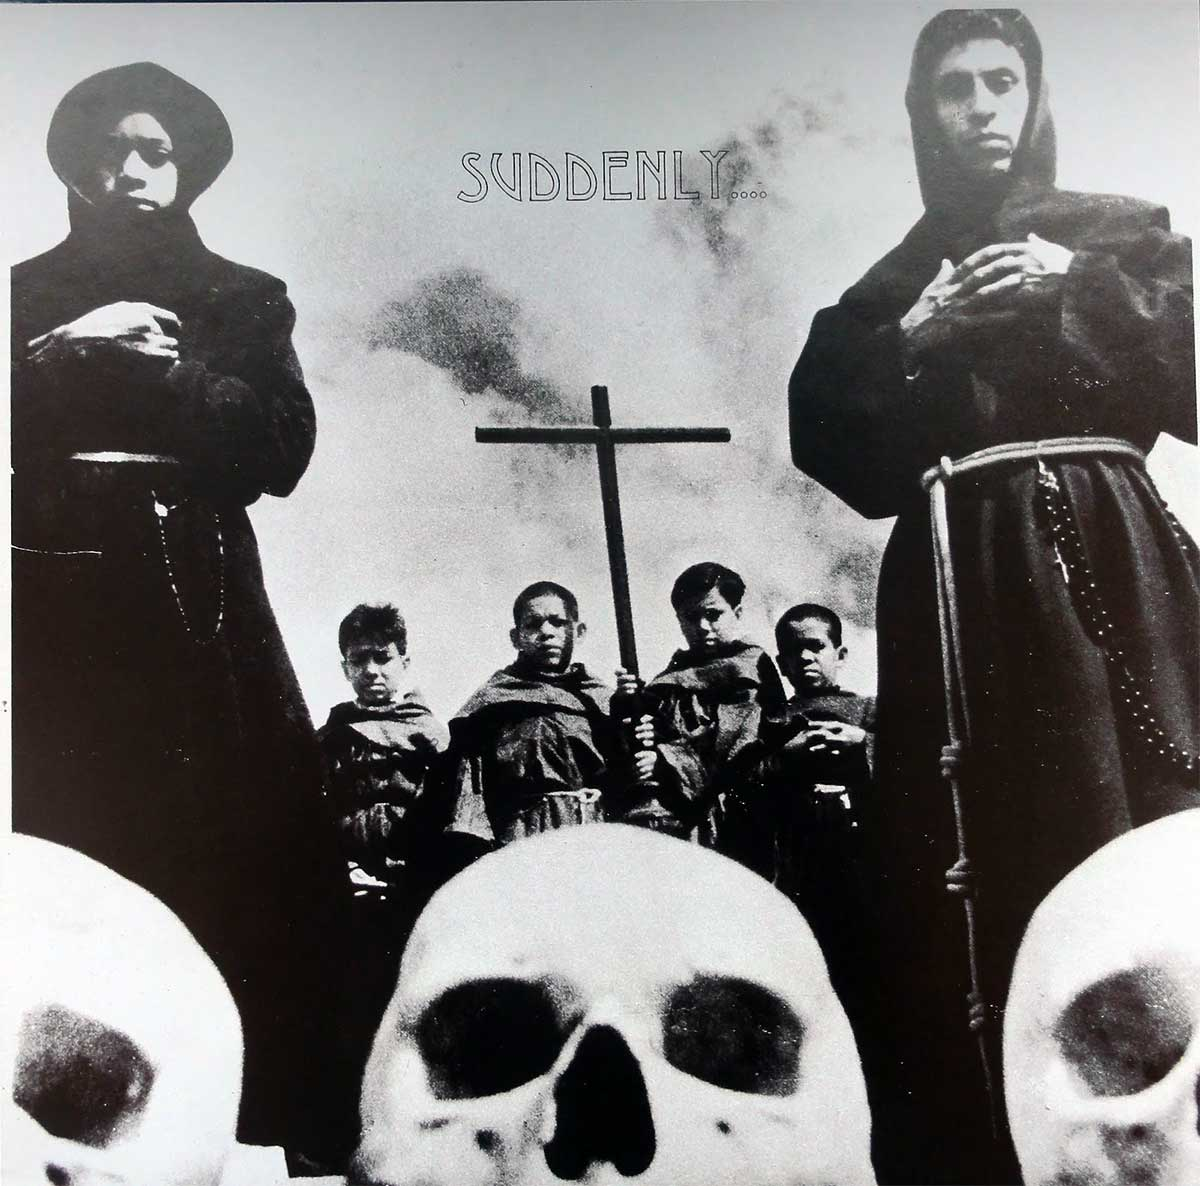 Music Review of the Sudden Death Album Suddenly from Rockadelic on Severed Cinema.